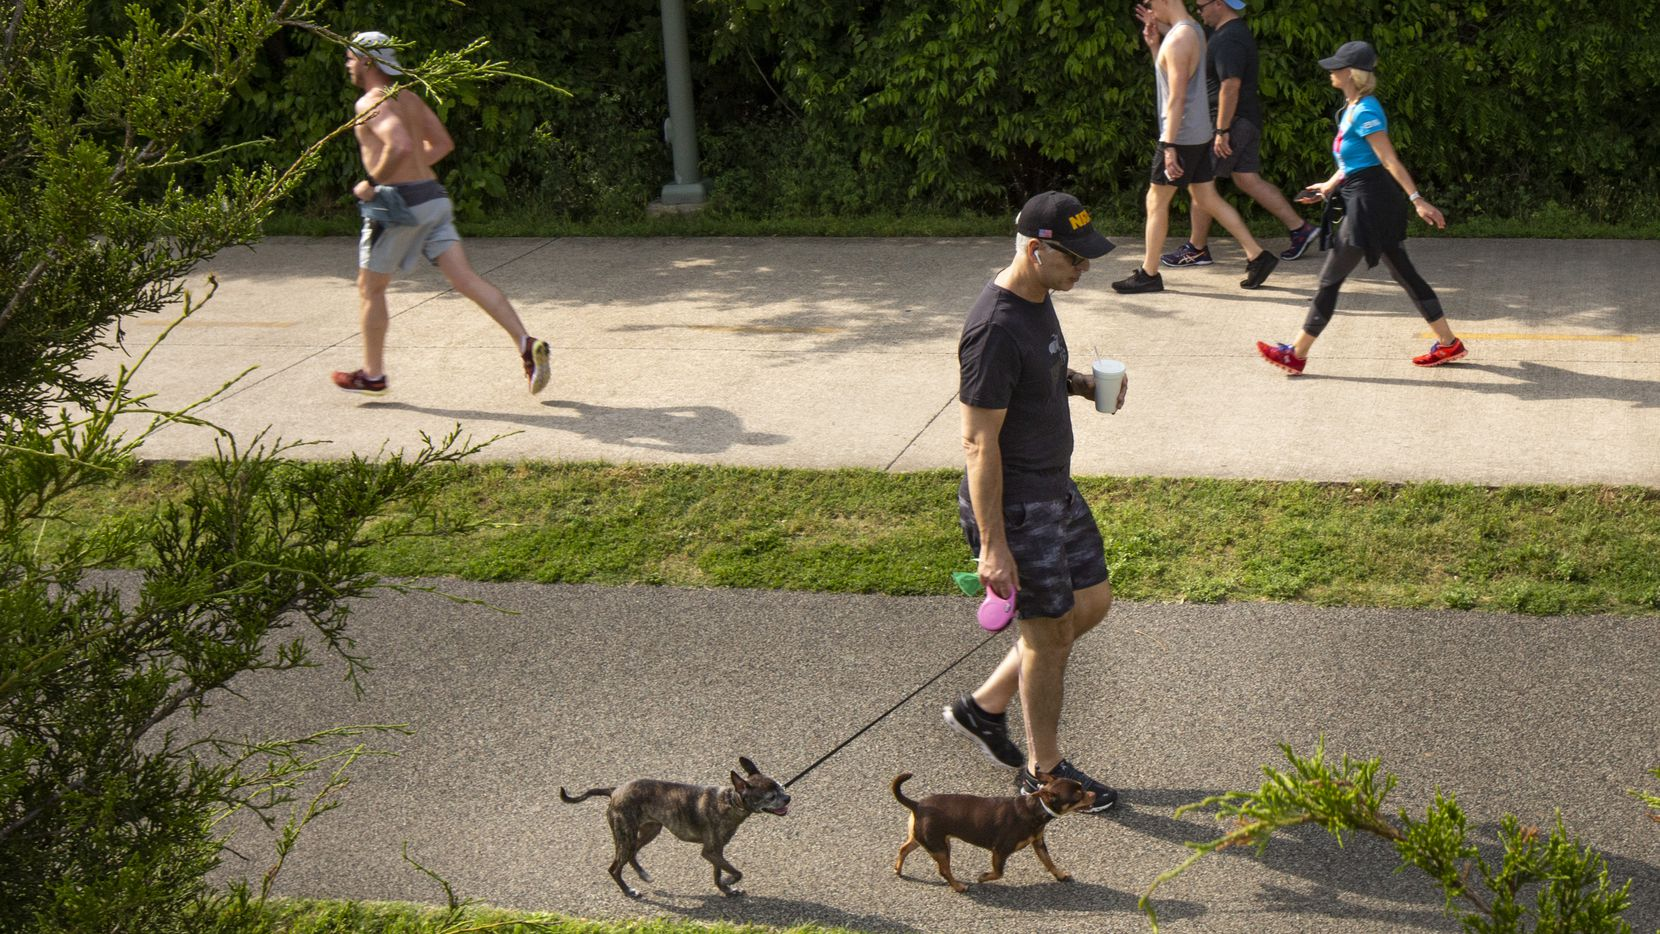 Photo of Dallasites run and walk at the Katy Trail in Dallas on Tuesday, April 21, 2020.